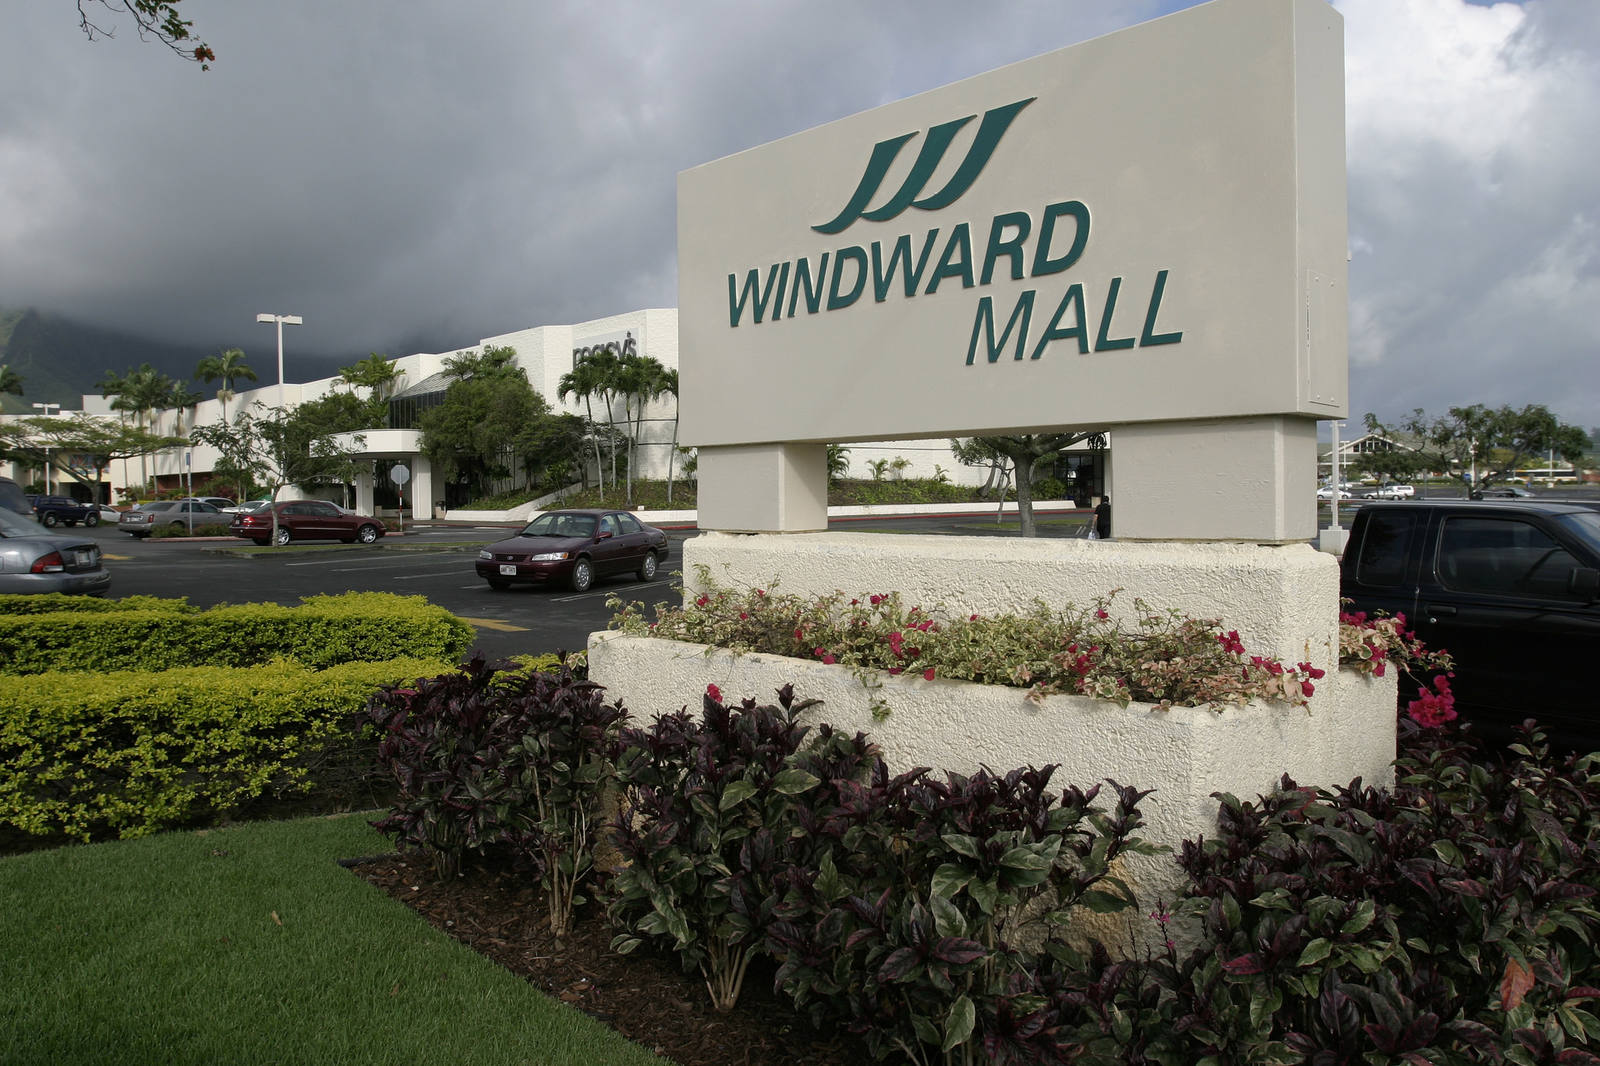 Windward Mall - Kaneohe, HI